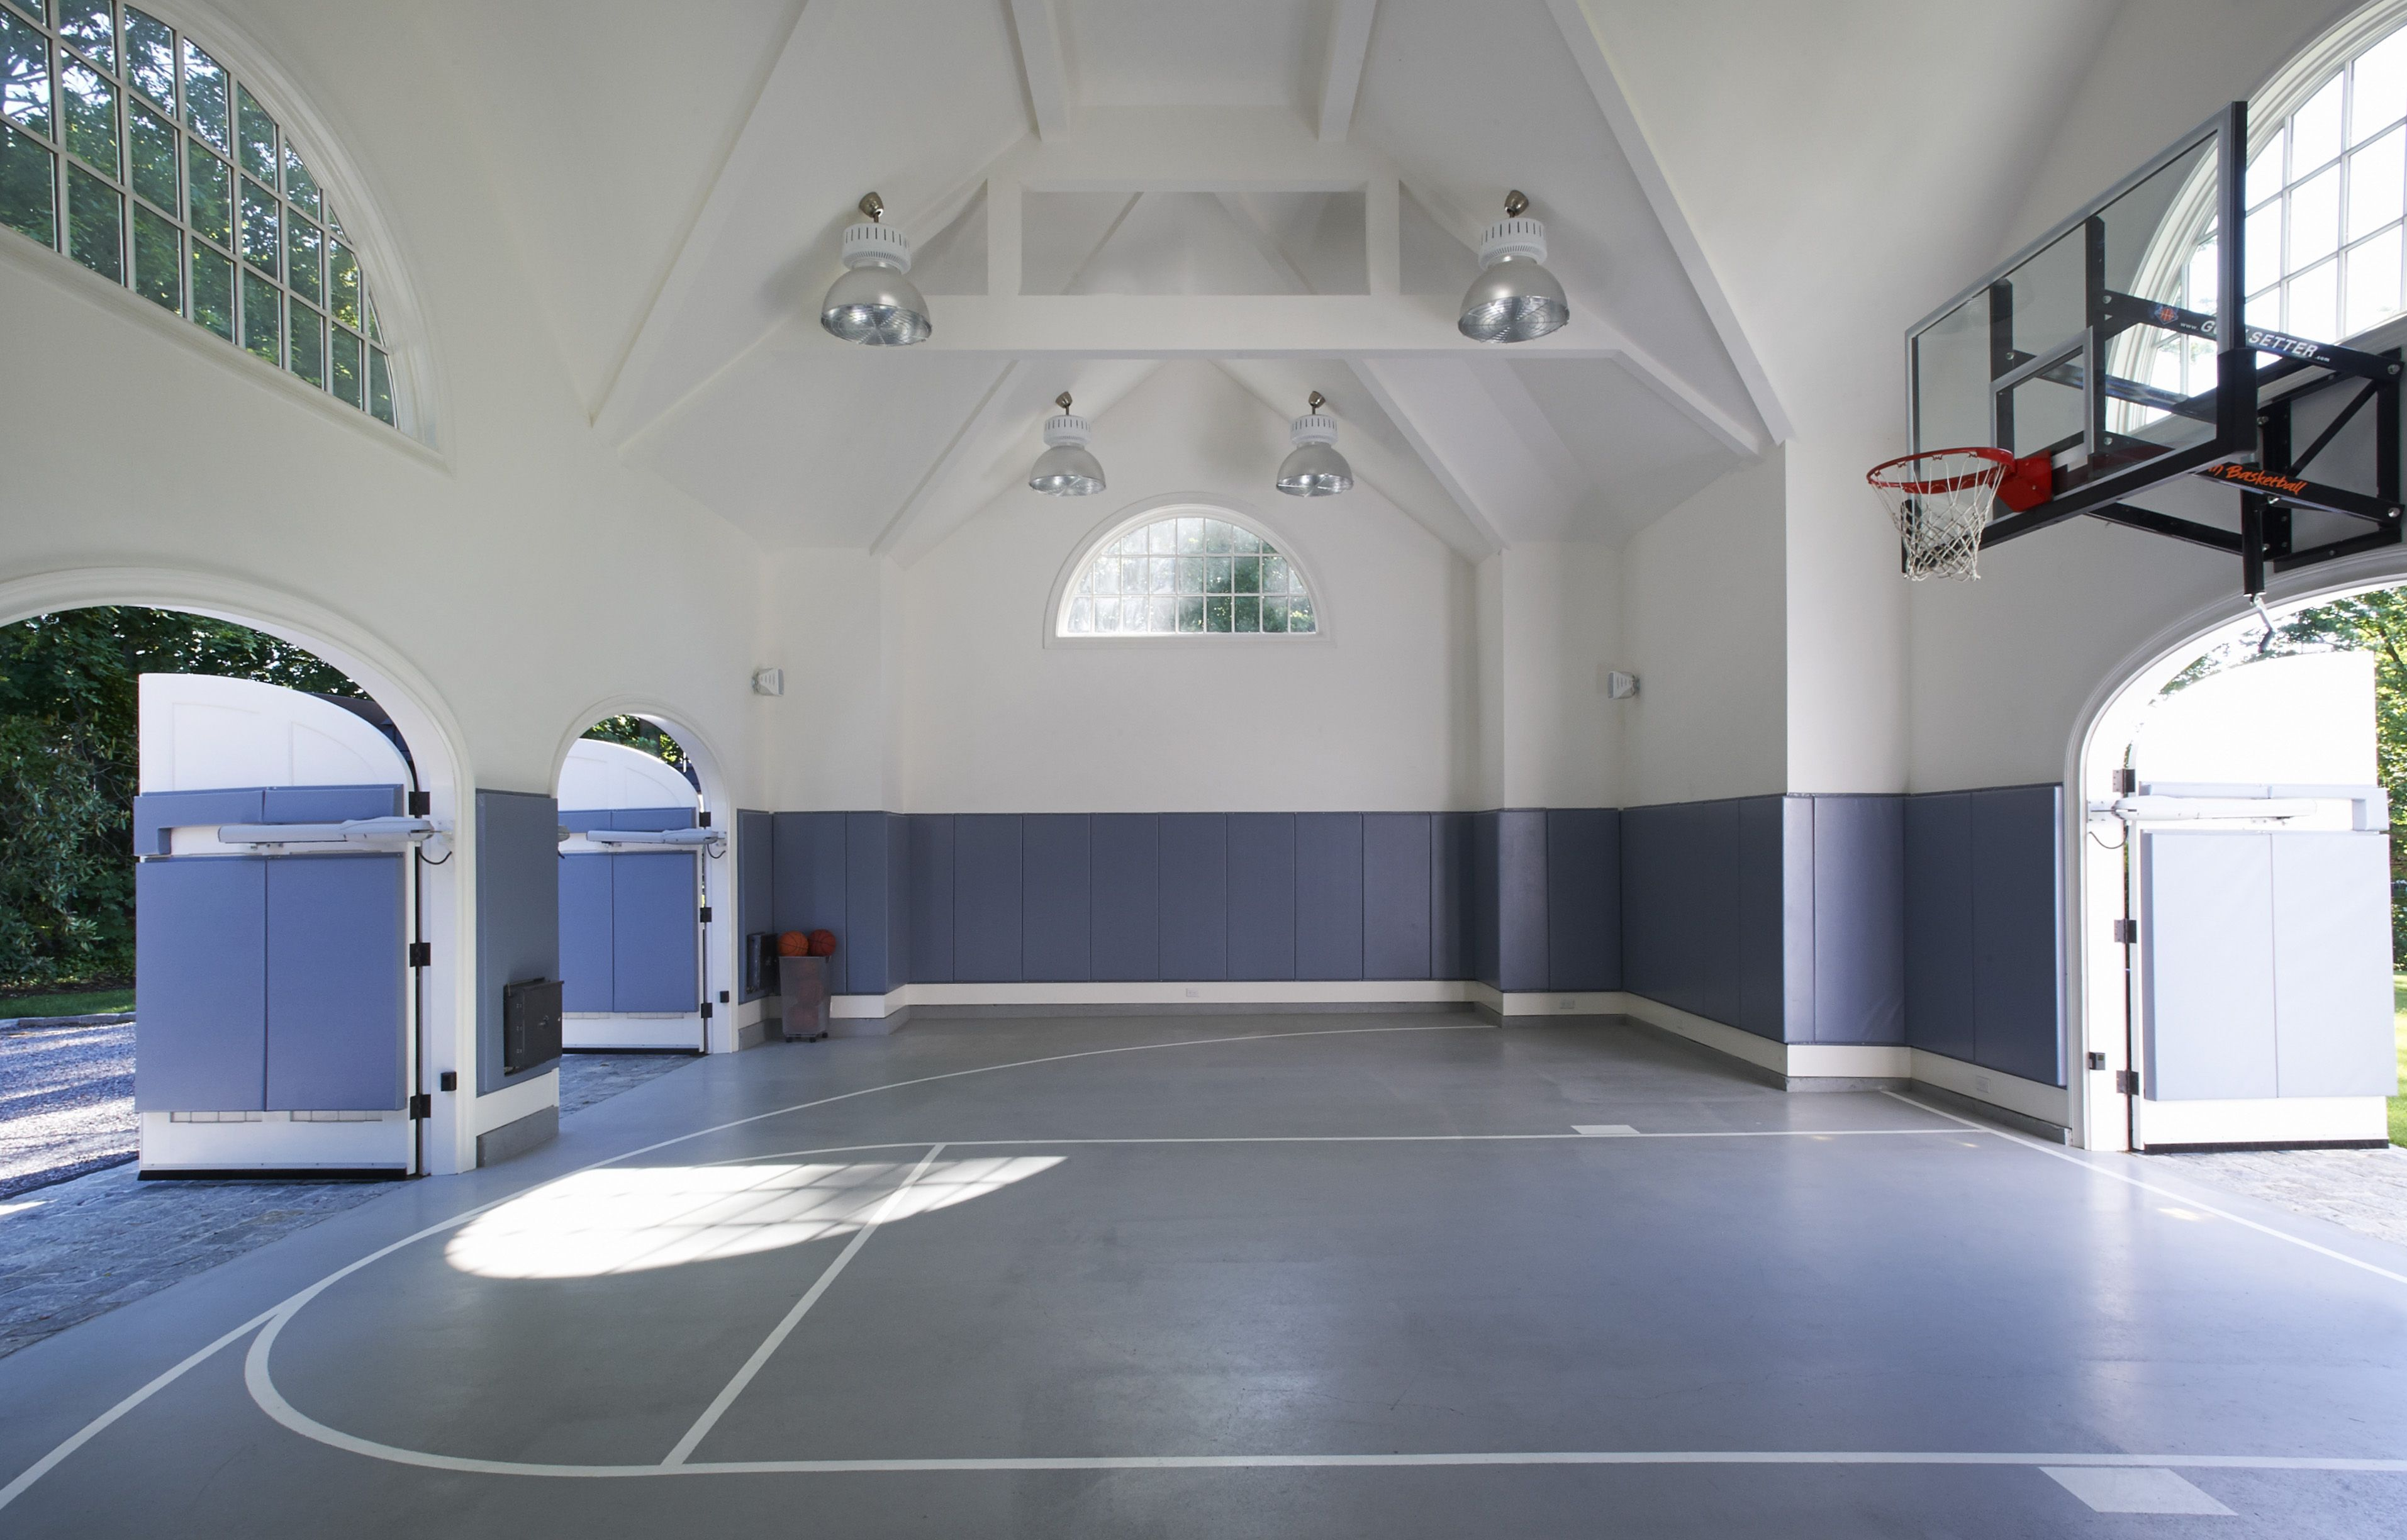 rec room design with basketball court - Google Search | Remodelholic ...